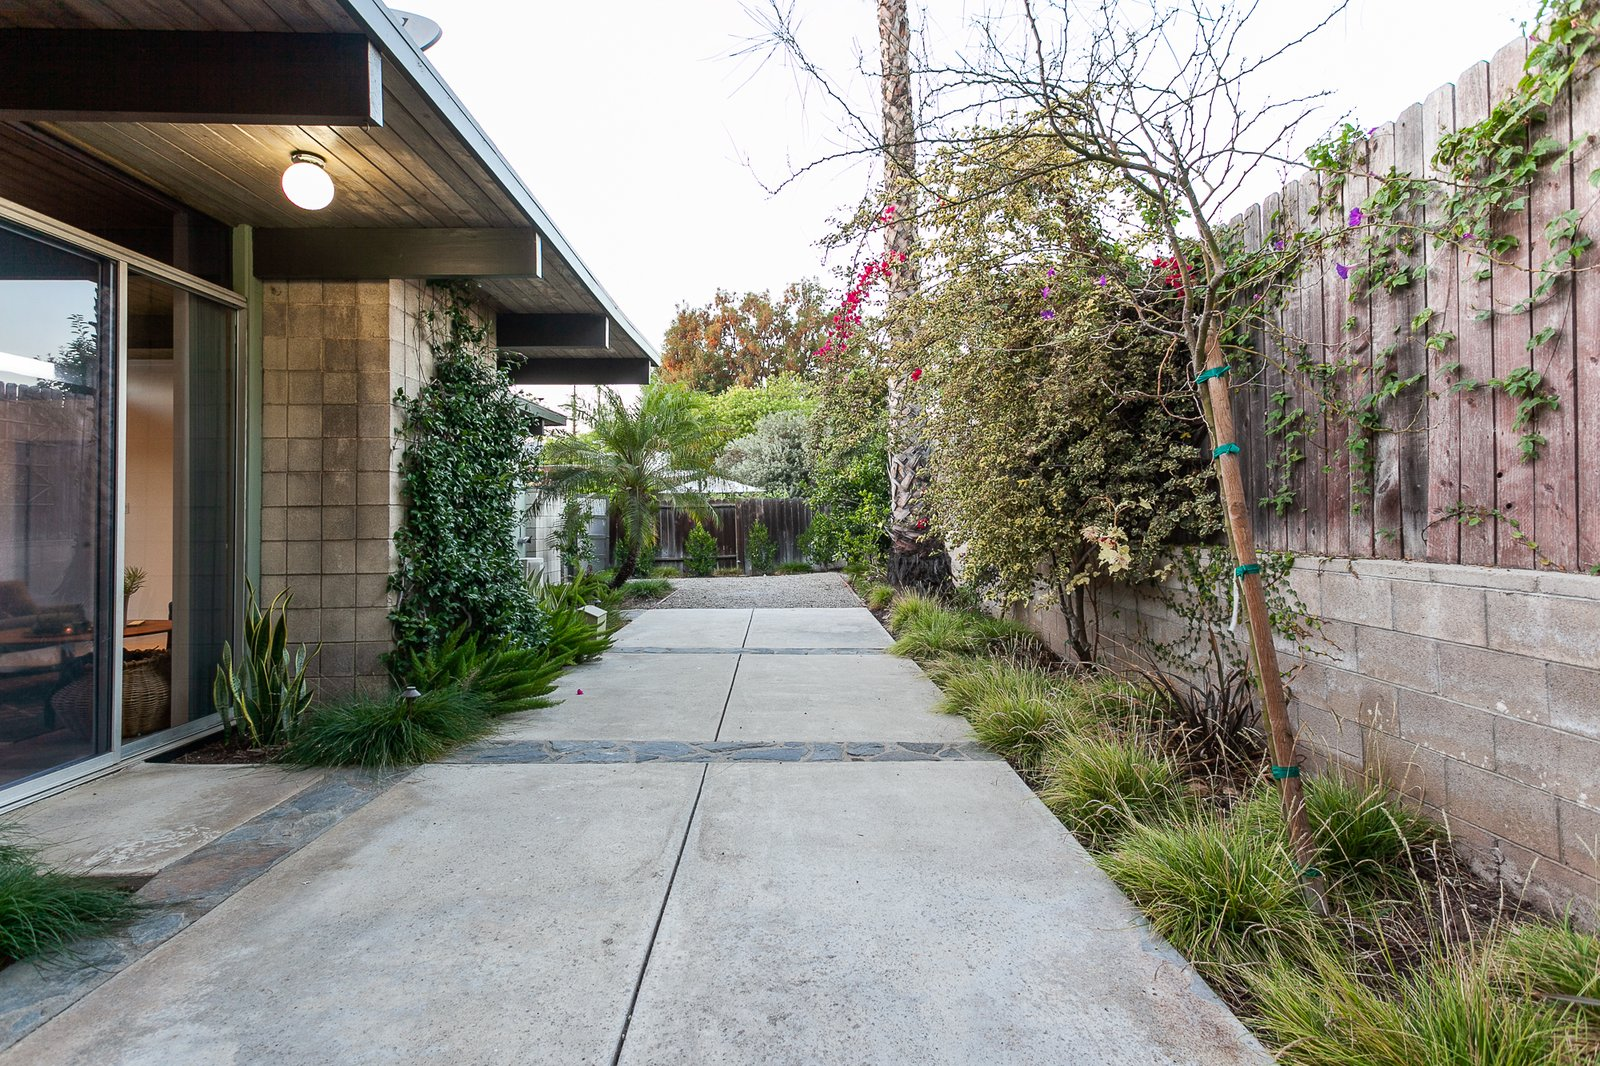 Outdoor, Large, Vertical, Pavers, Concrete, Side Yard, Stone, Concrete, Wood, Horizontal, Hanging, Trees, and Shrubs The home's elegant post-and-beam construction as seen from the exterior.    Outdoor Side Yard Concrete Large Hanging Photos from An Updated Eichler With an Indoor-Outdoor Master Bath Seeks $1.15M